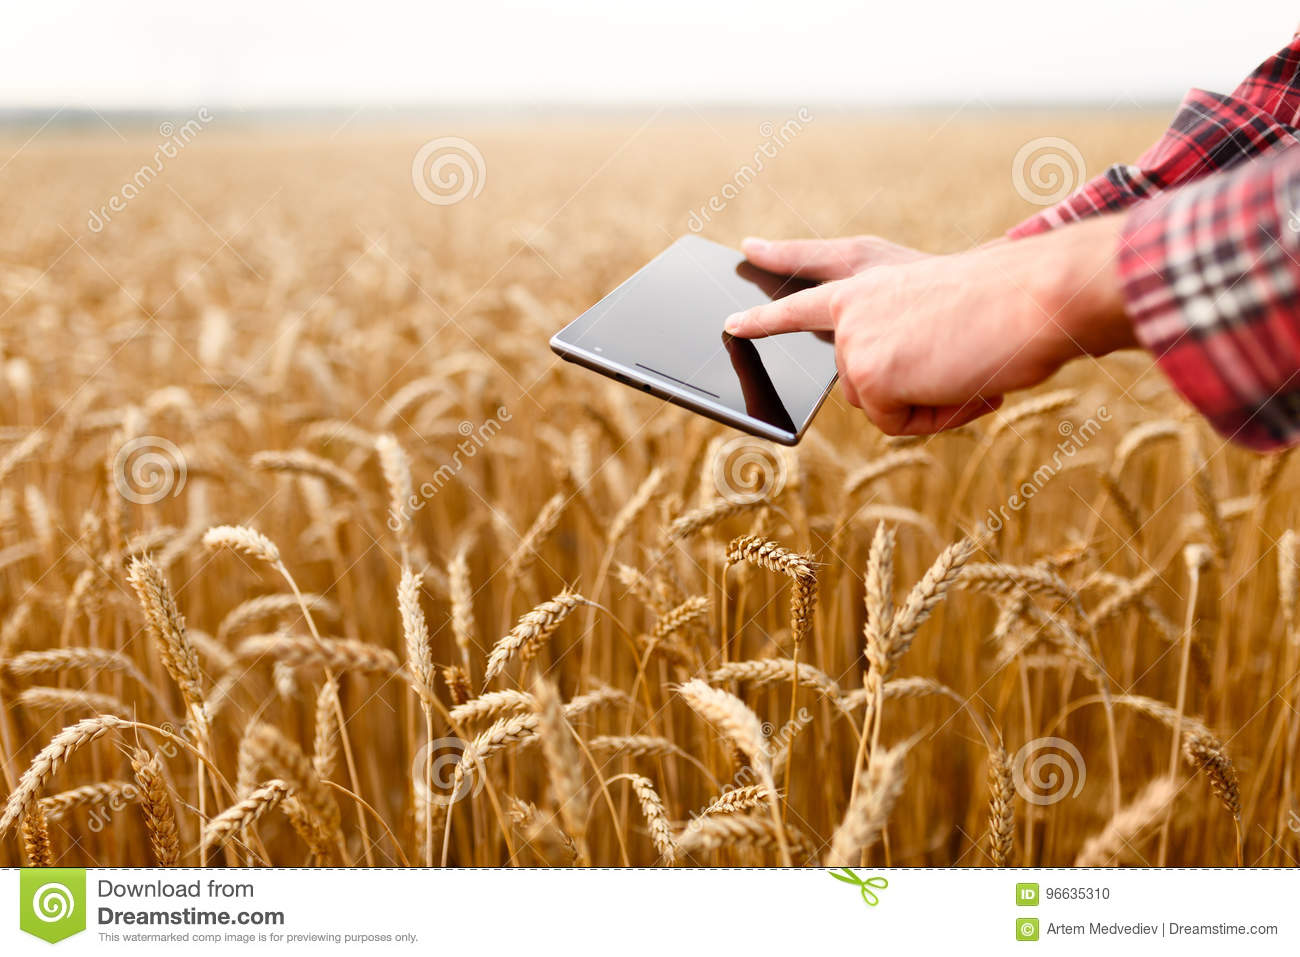 Smart farming using modern technologies in agriculture. Man agronomist farmer touches and swipes the app on digital